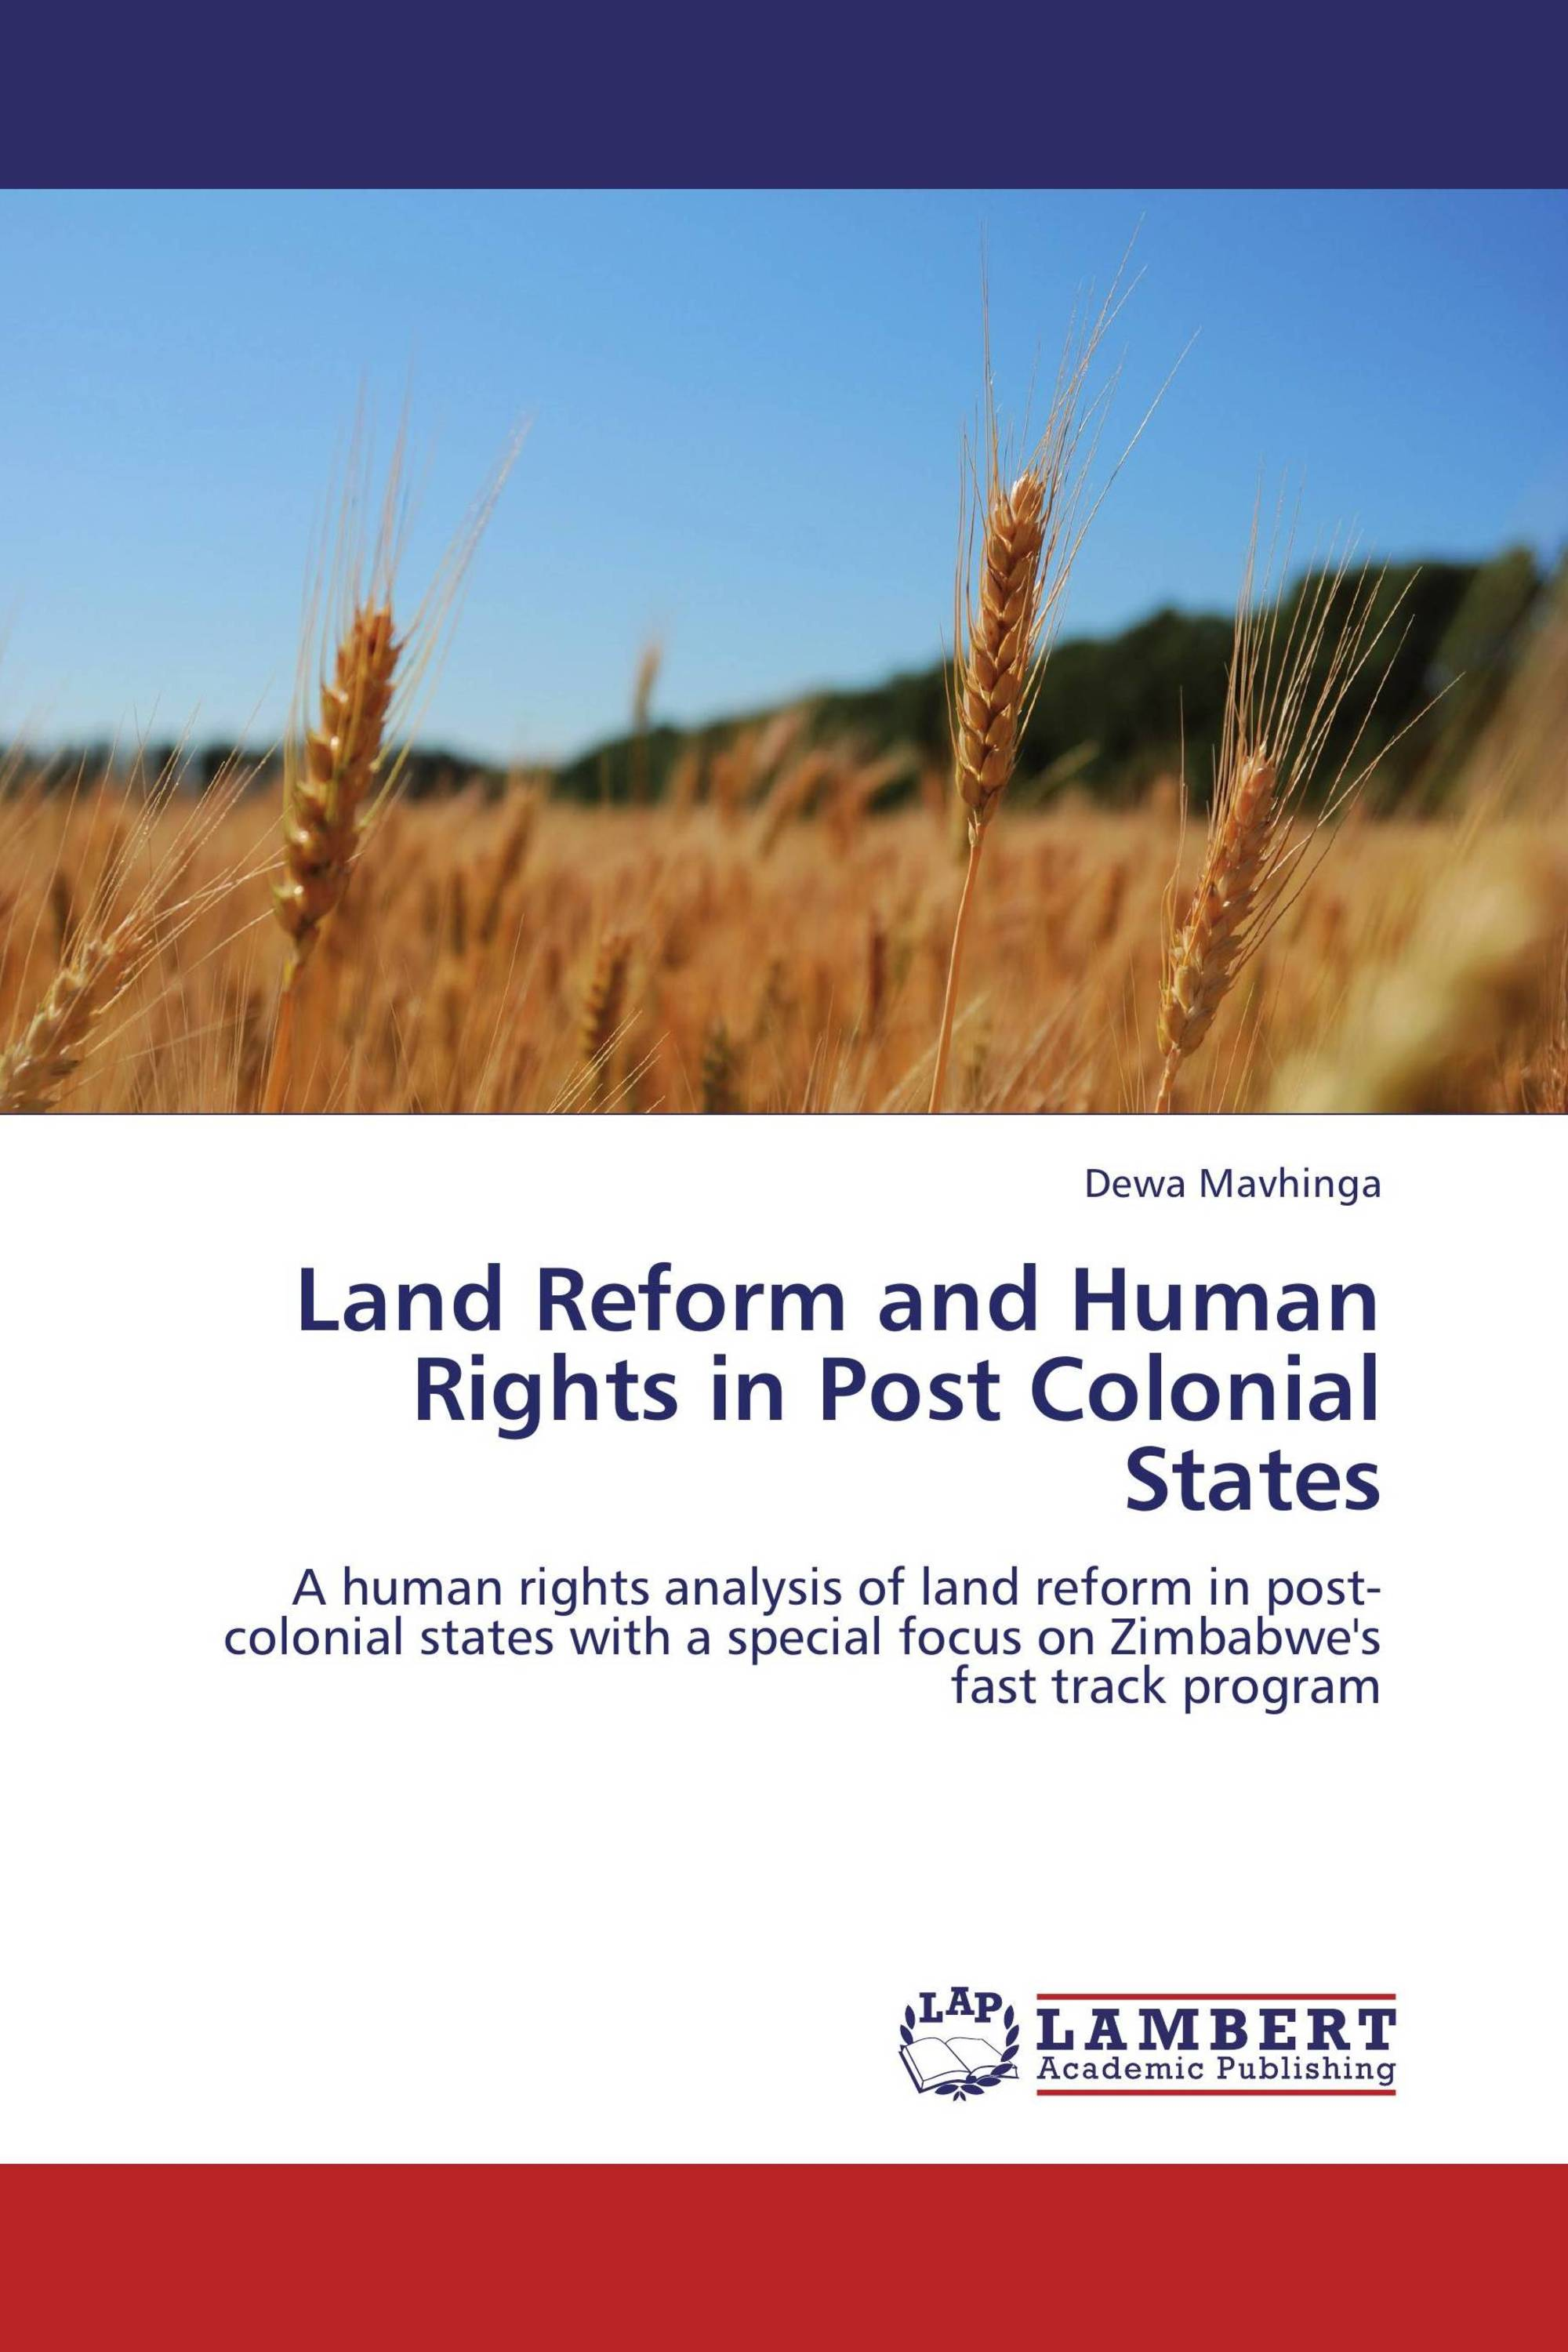 Land Reform and Human Rights in Post Colonial States